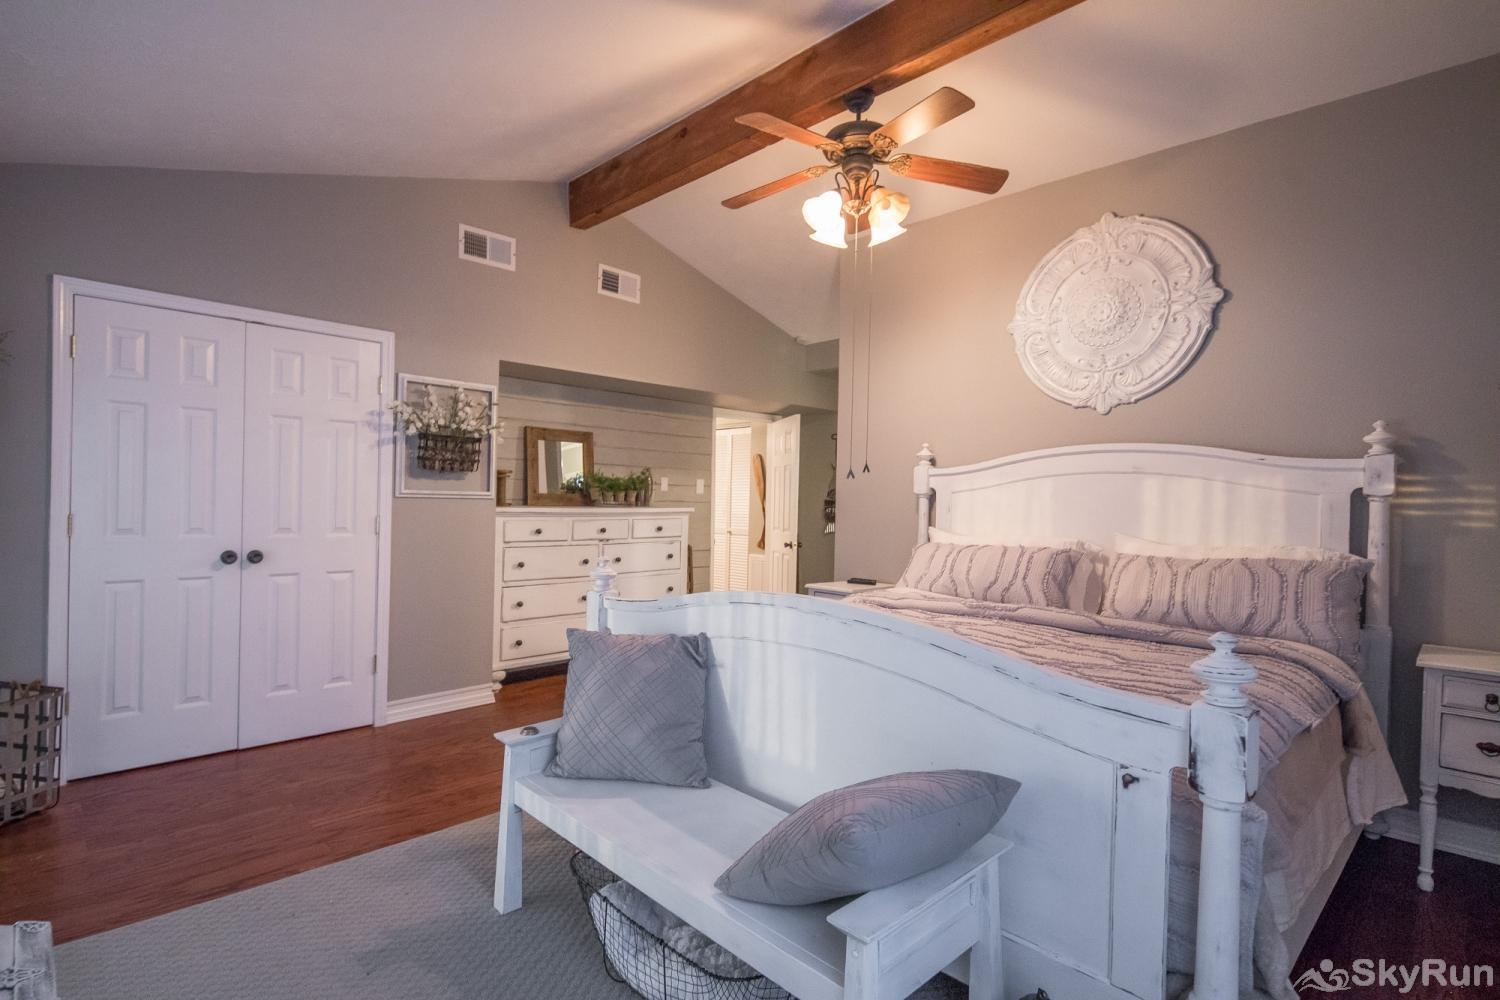 ANCHORS AWAY Master suite, cont.